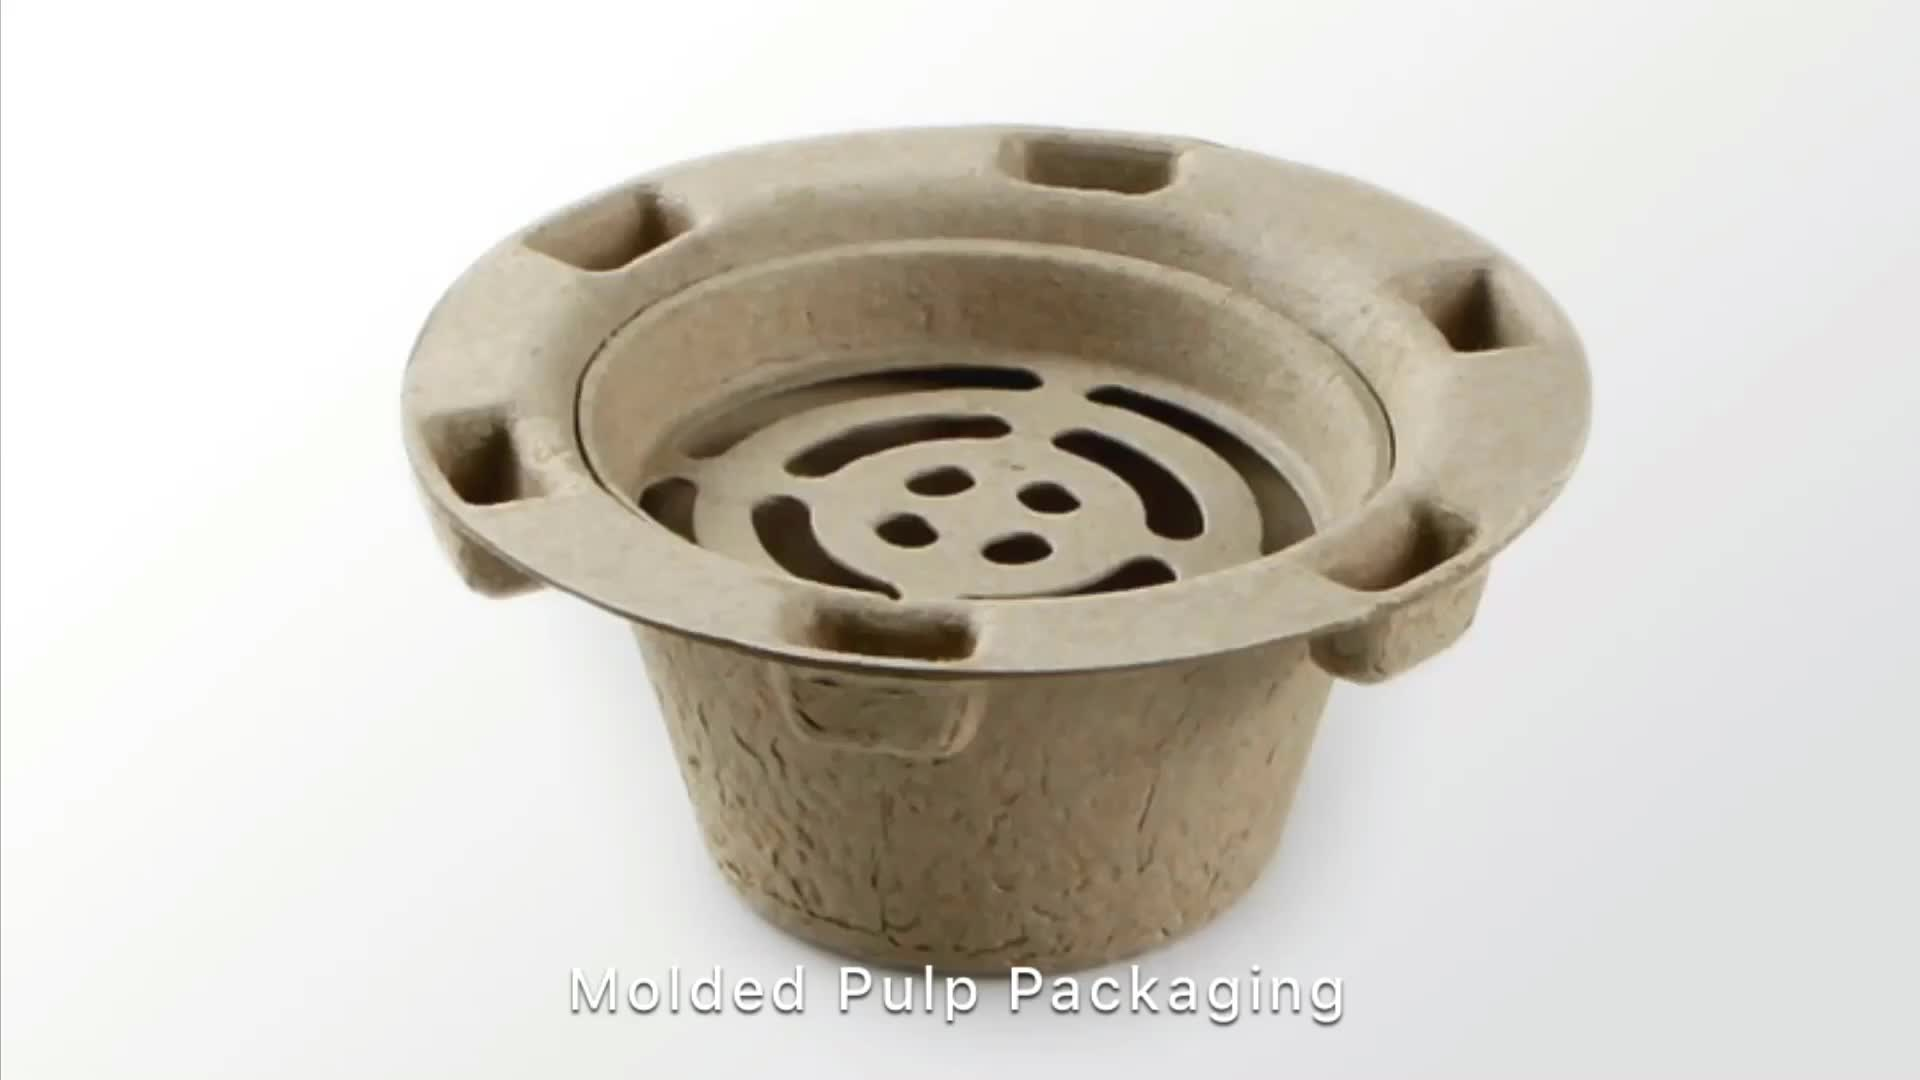 Molded Pulp Biodegradable & Disposable Tray Packaging